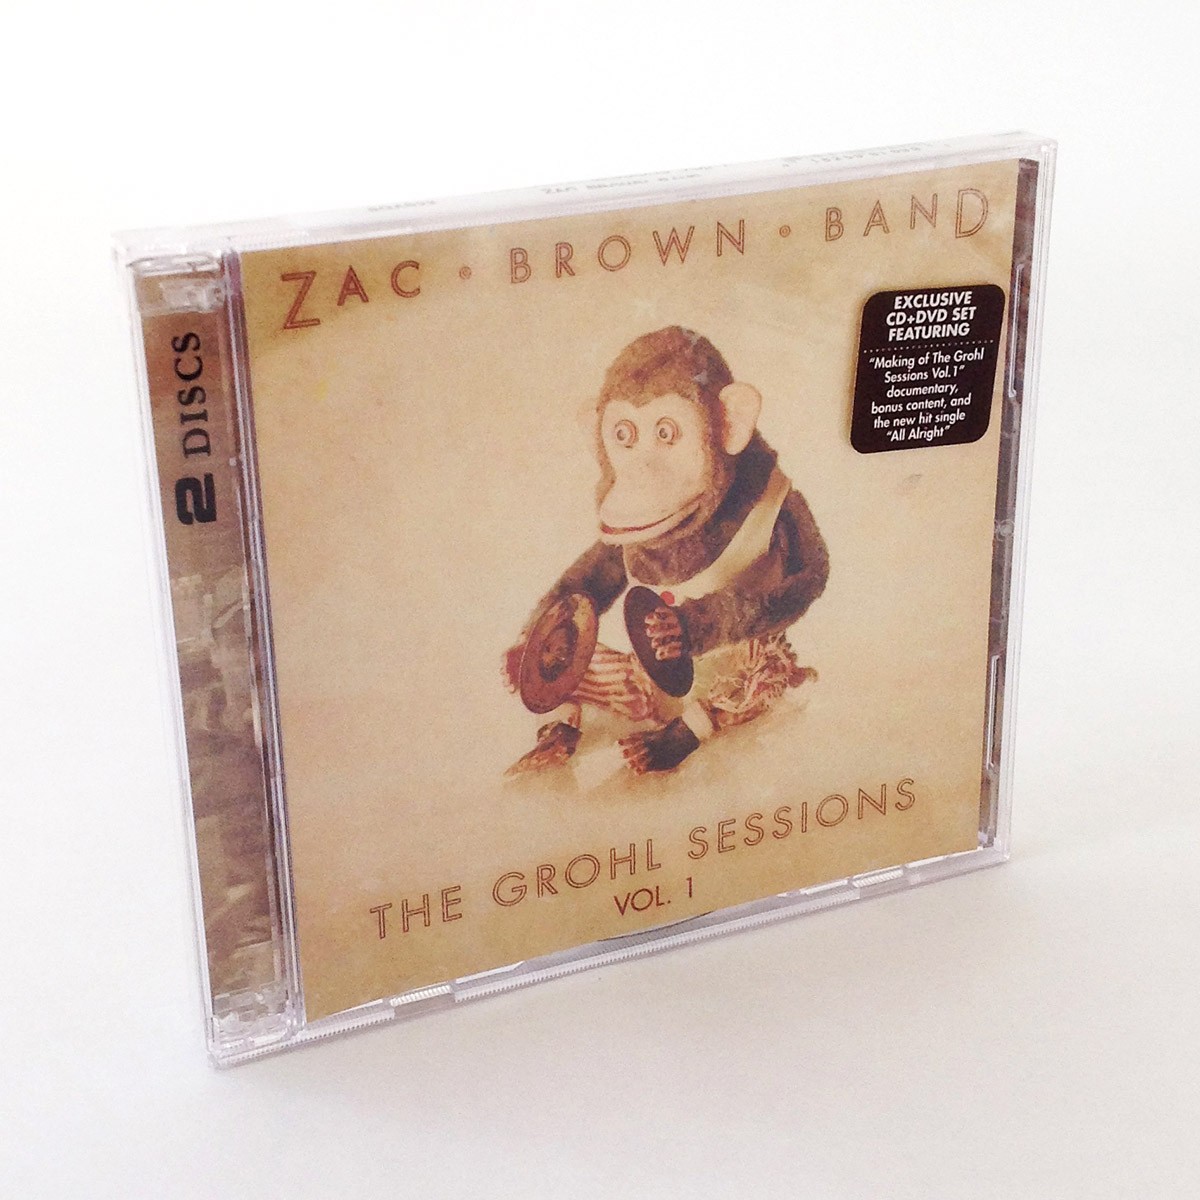 Zac Brown Band - Best CD / Compact Disc Replication